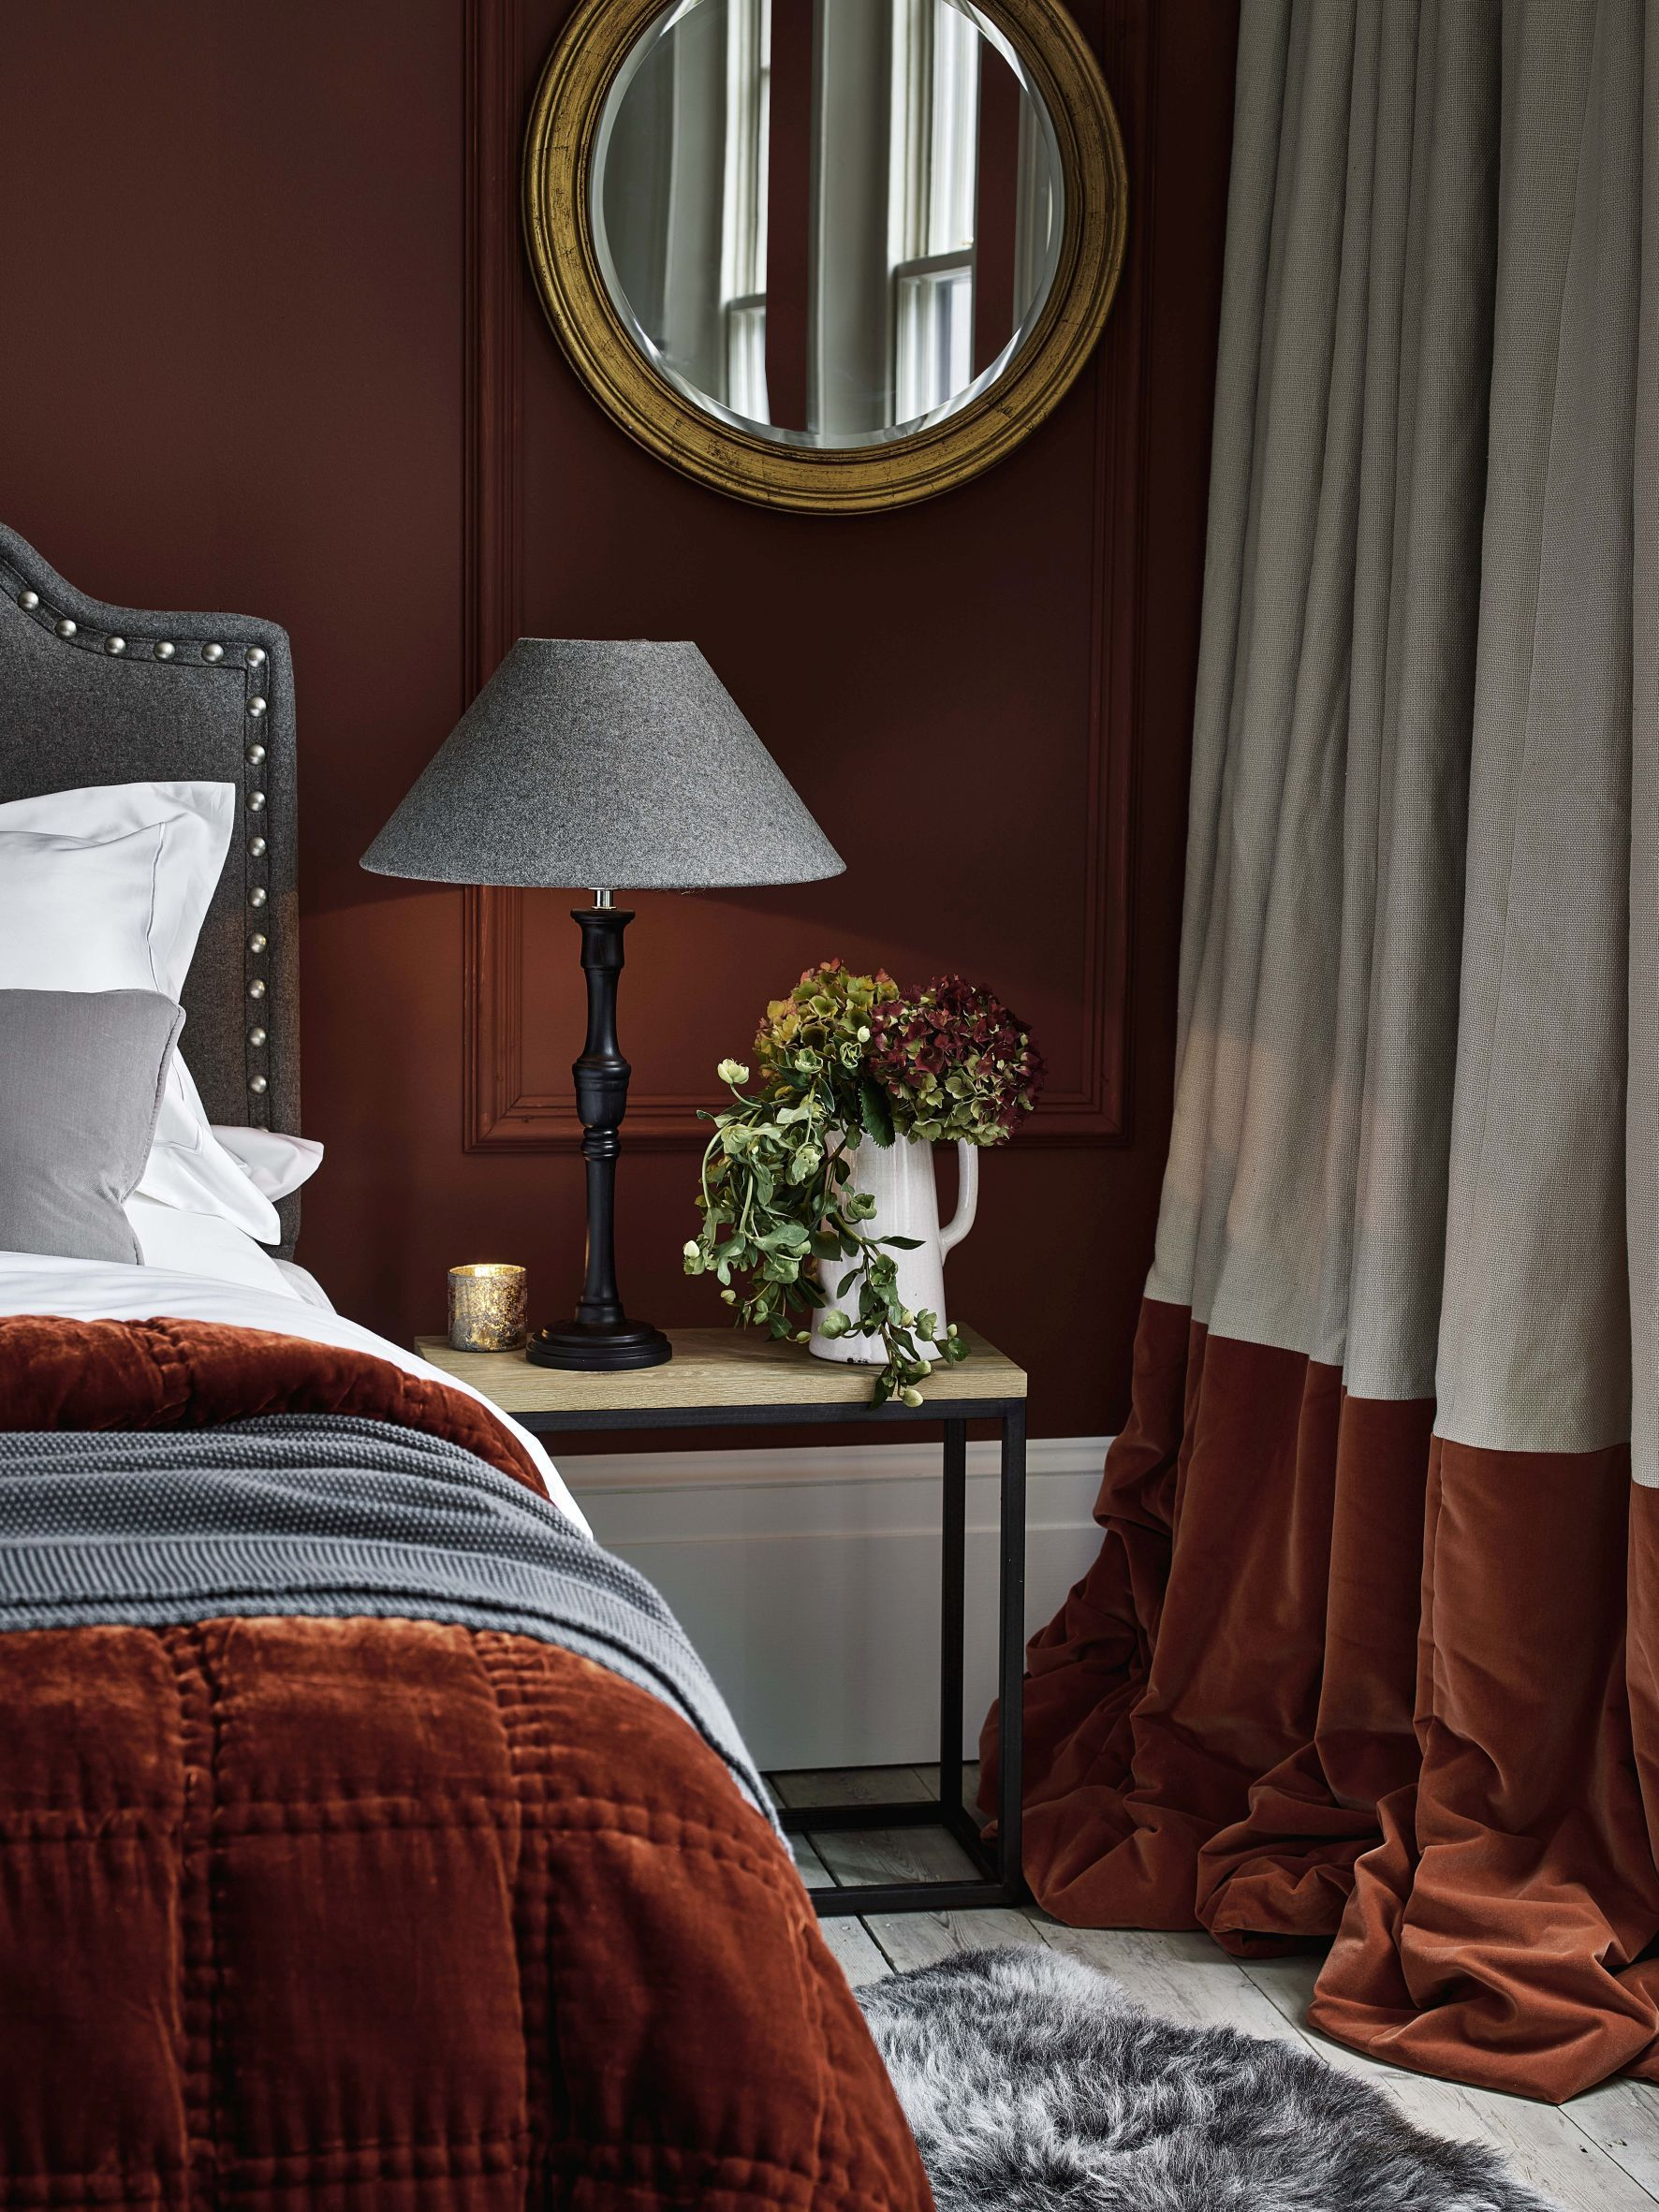 16 stylish bedroom curtain ideas | fireplace in 2019 ...